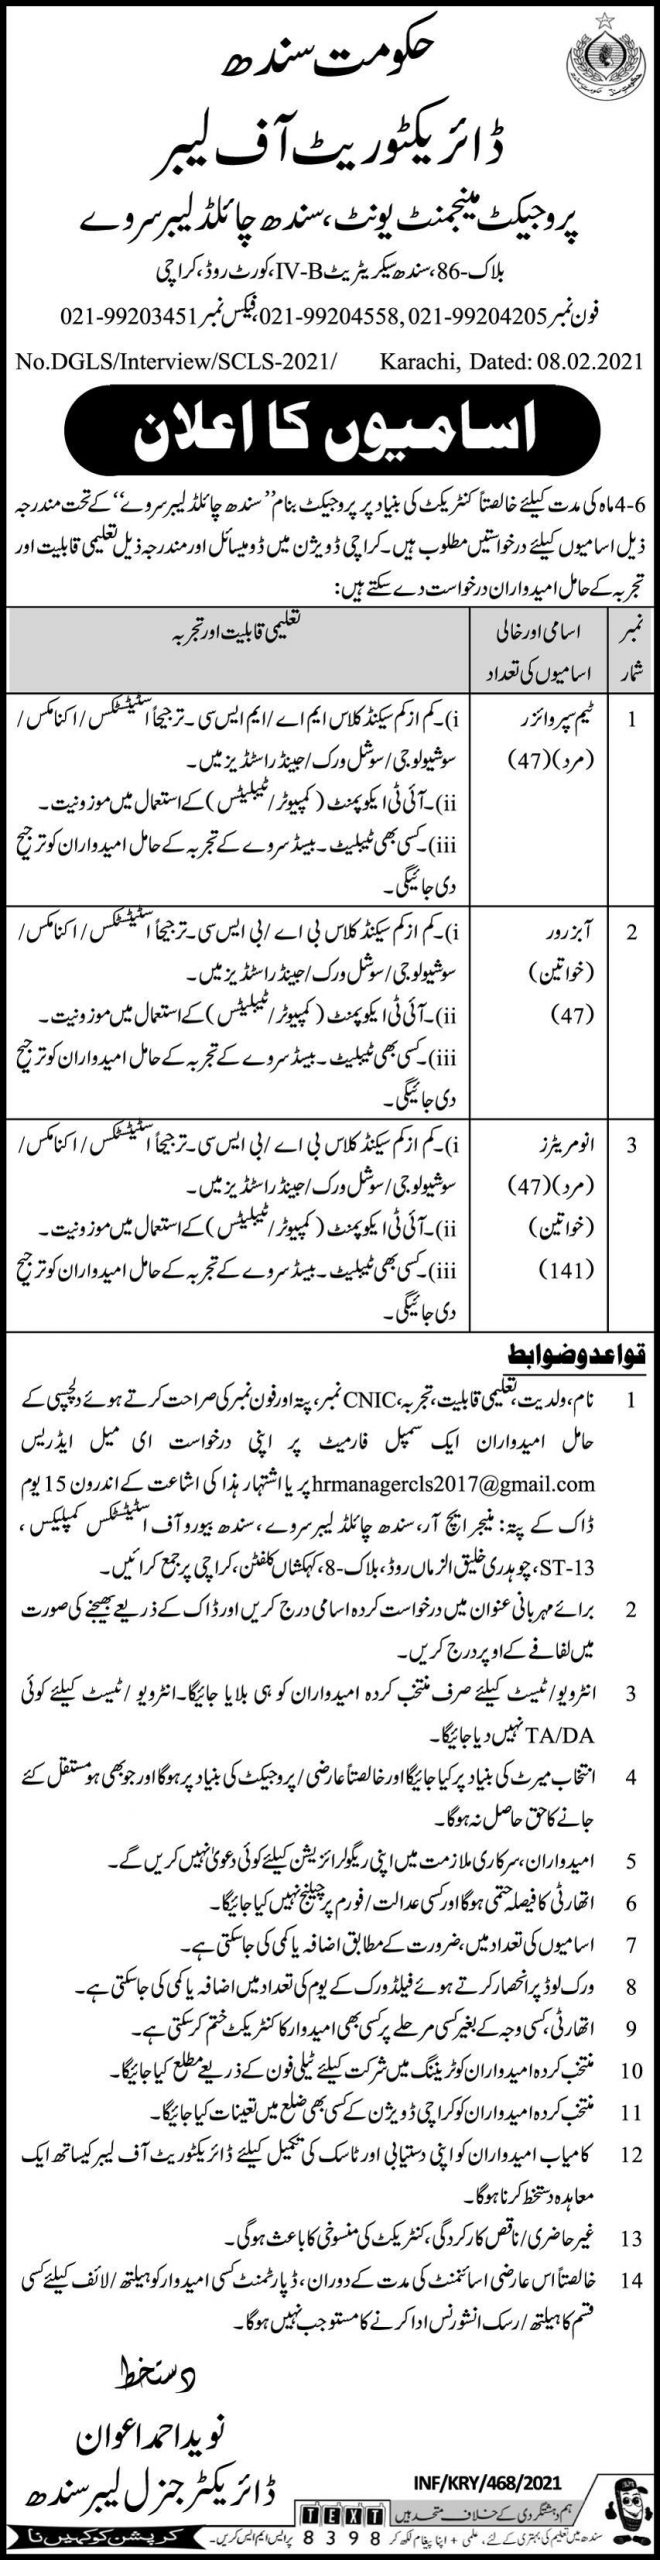 Project Management Unit Government of Sindh Jobs February 2021